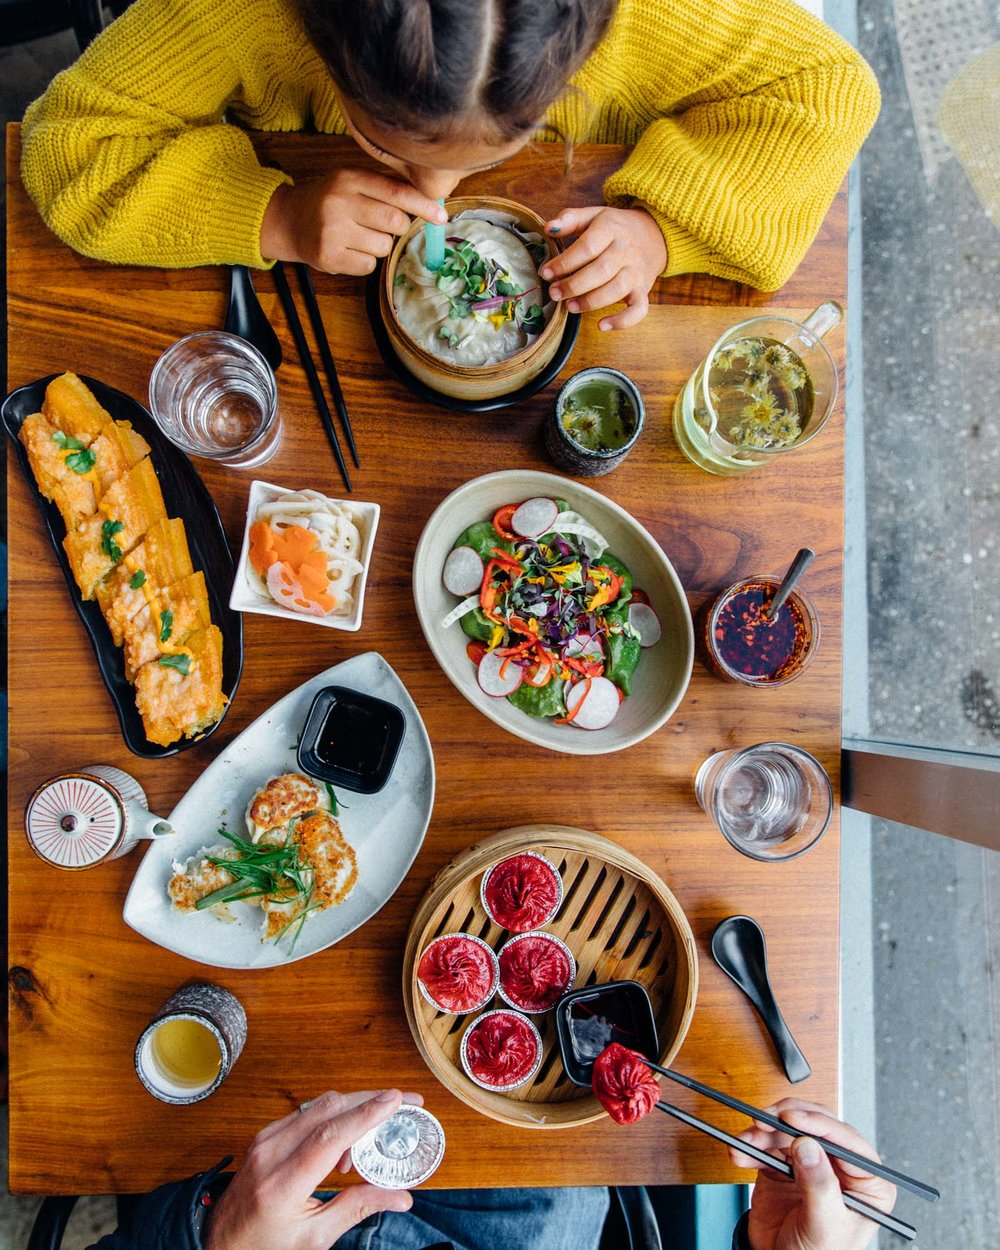 Where to eat in San Francisco - Dumpling Time by Madeline Lu